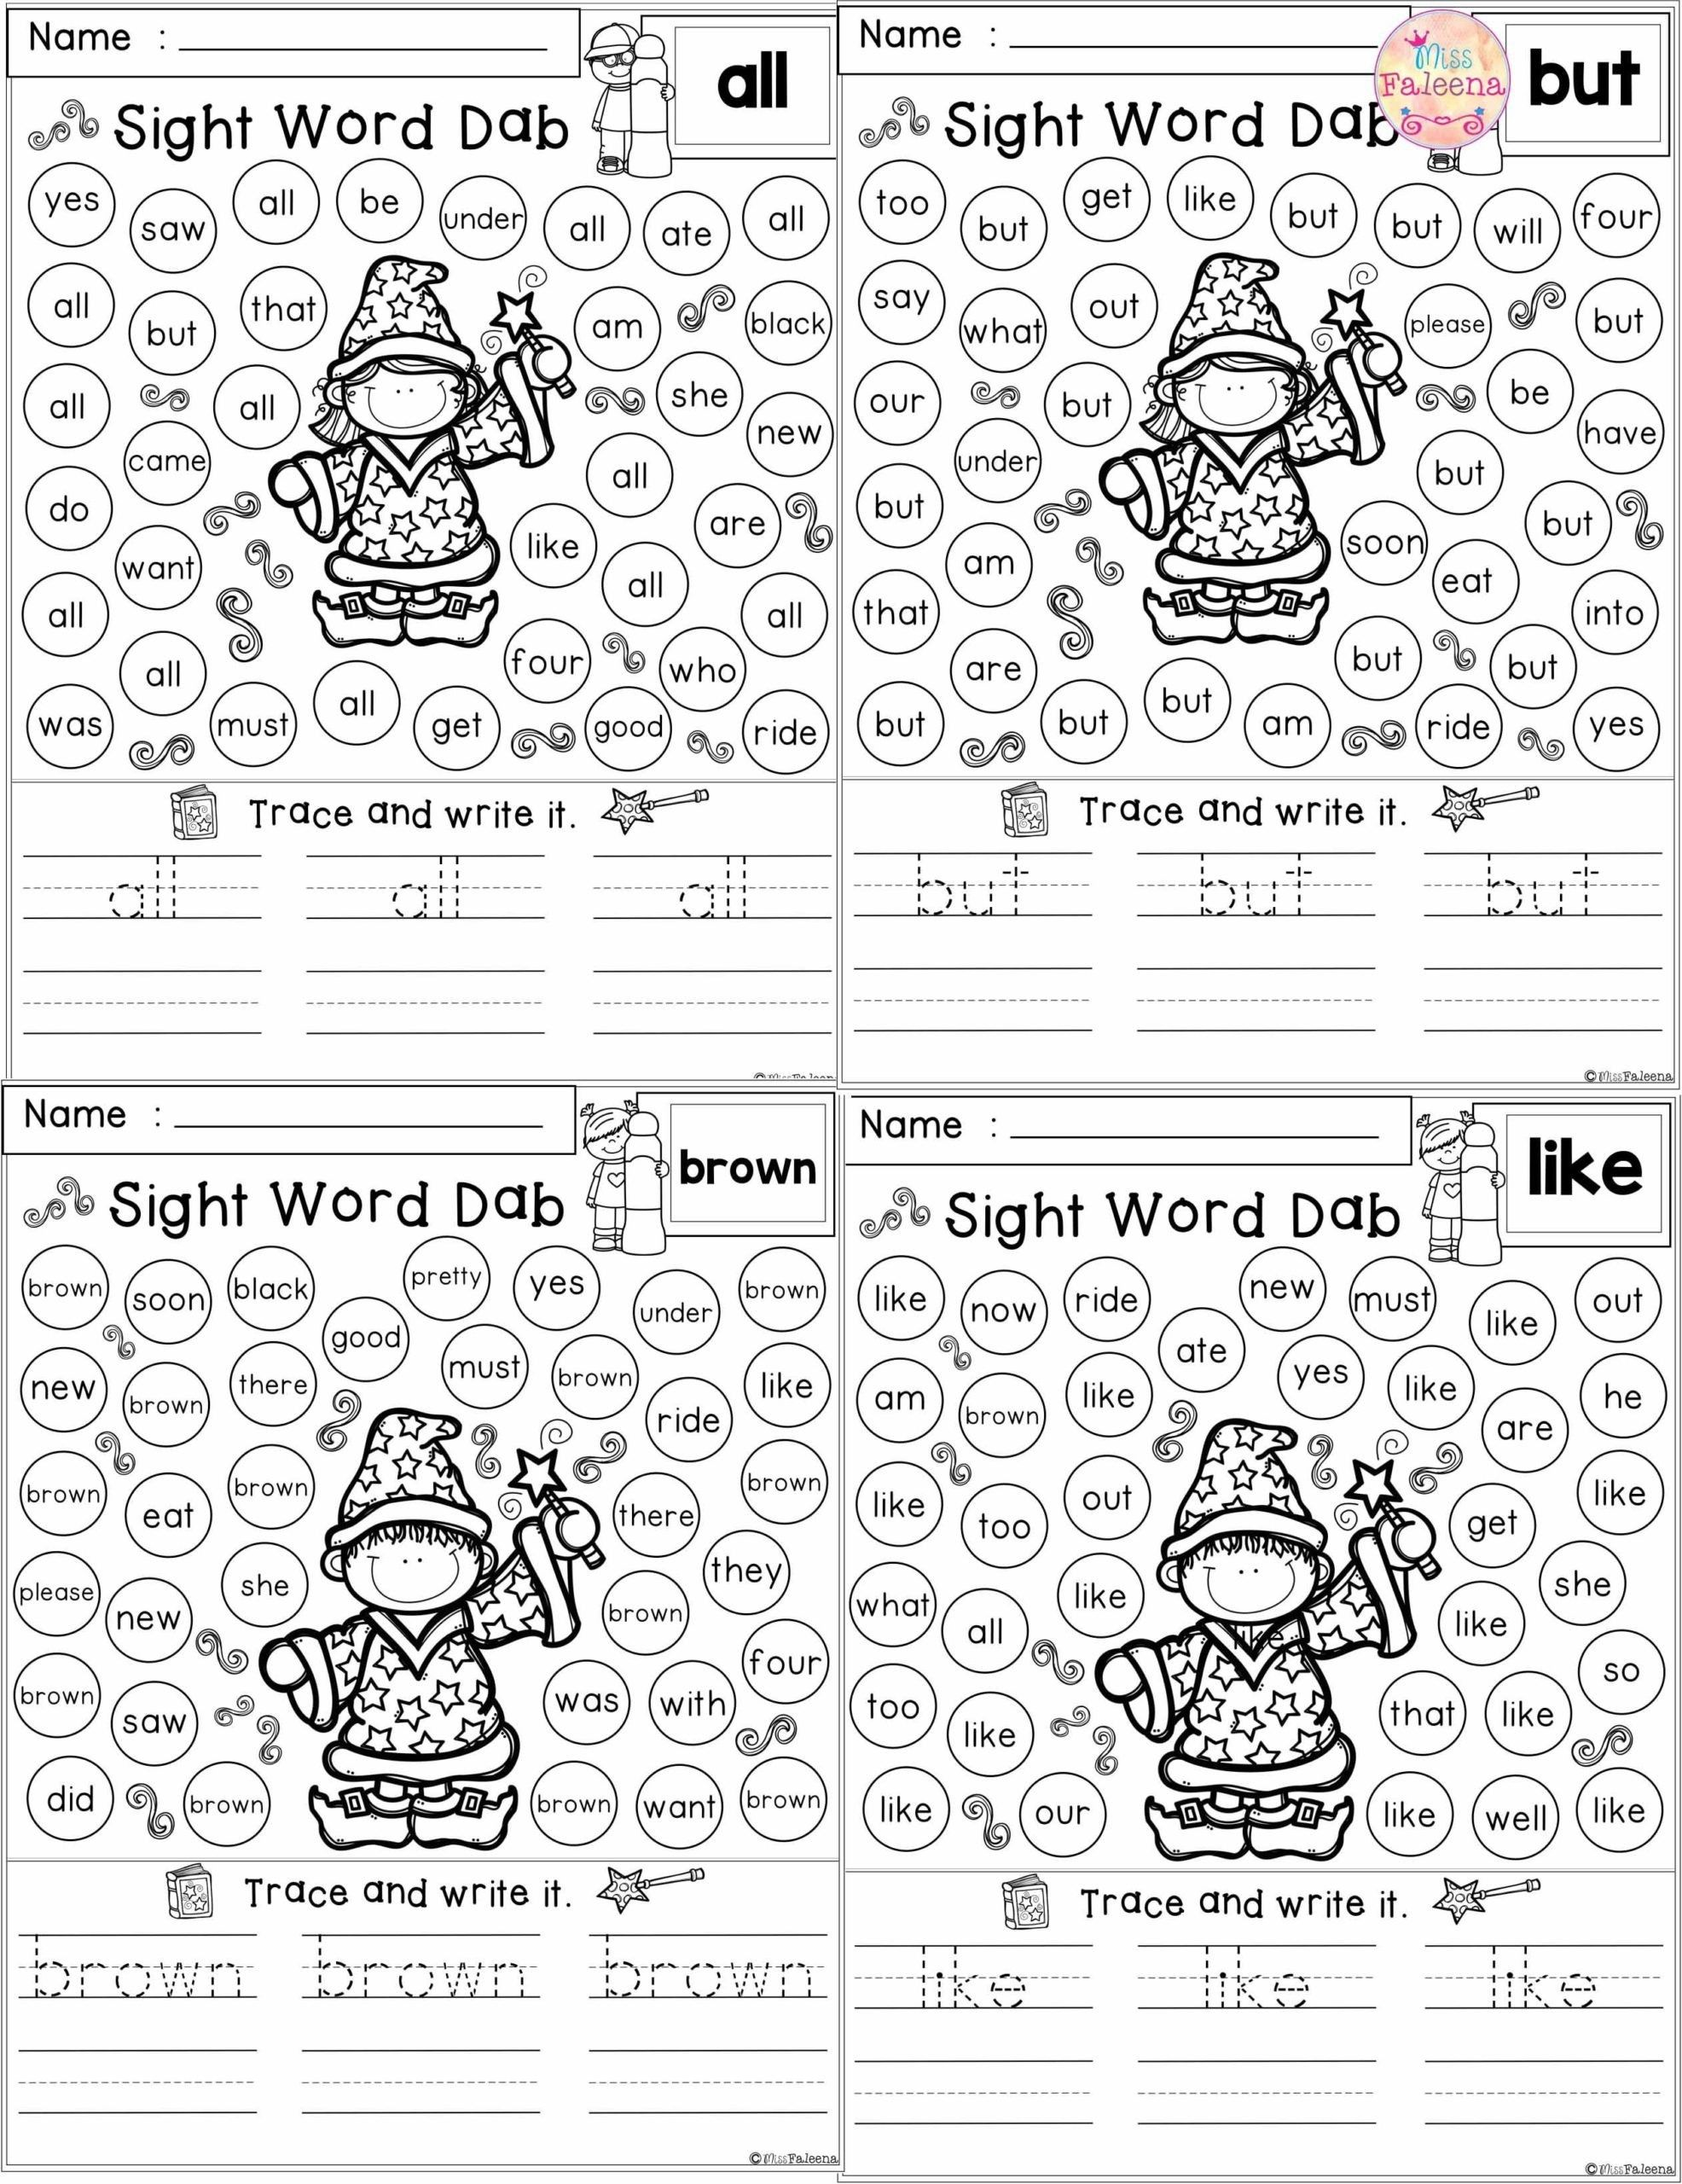 7 New Language Arts Worksheets 8th Grade di 2020